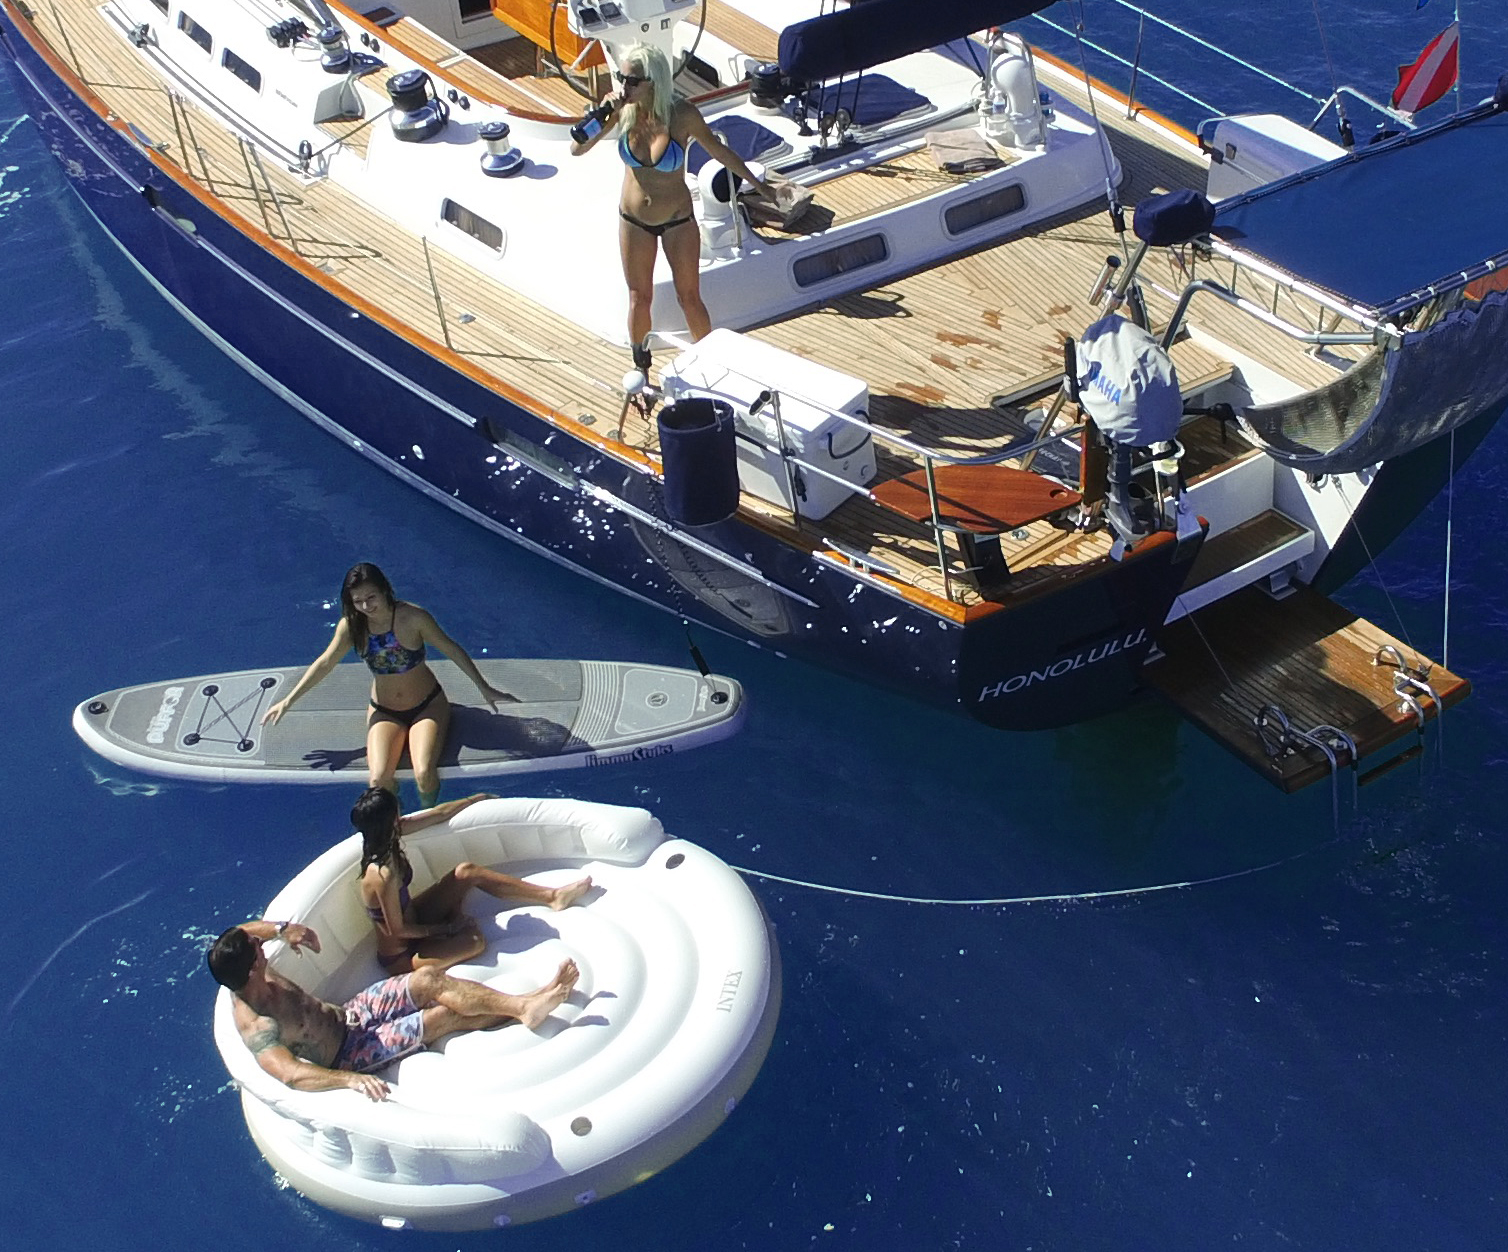 Snorkeling on yacht with SUP and lounge raft off waikiki